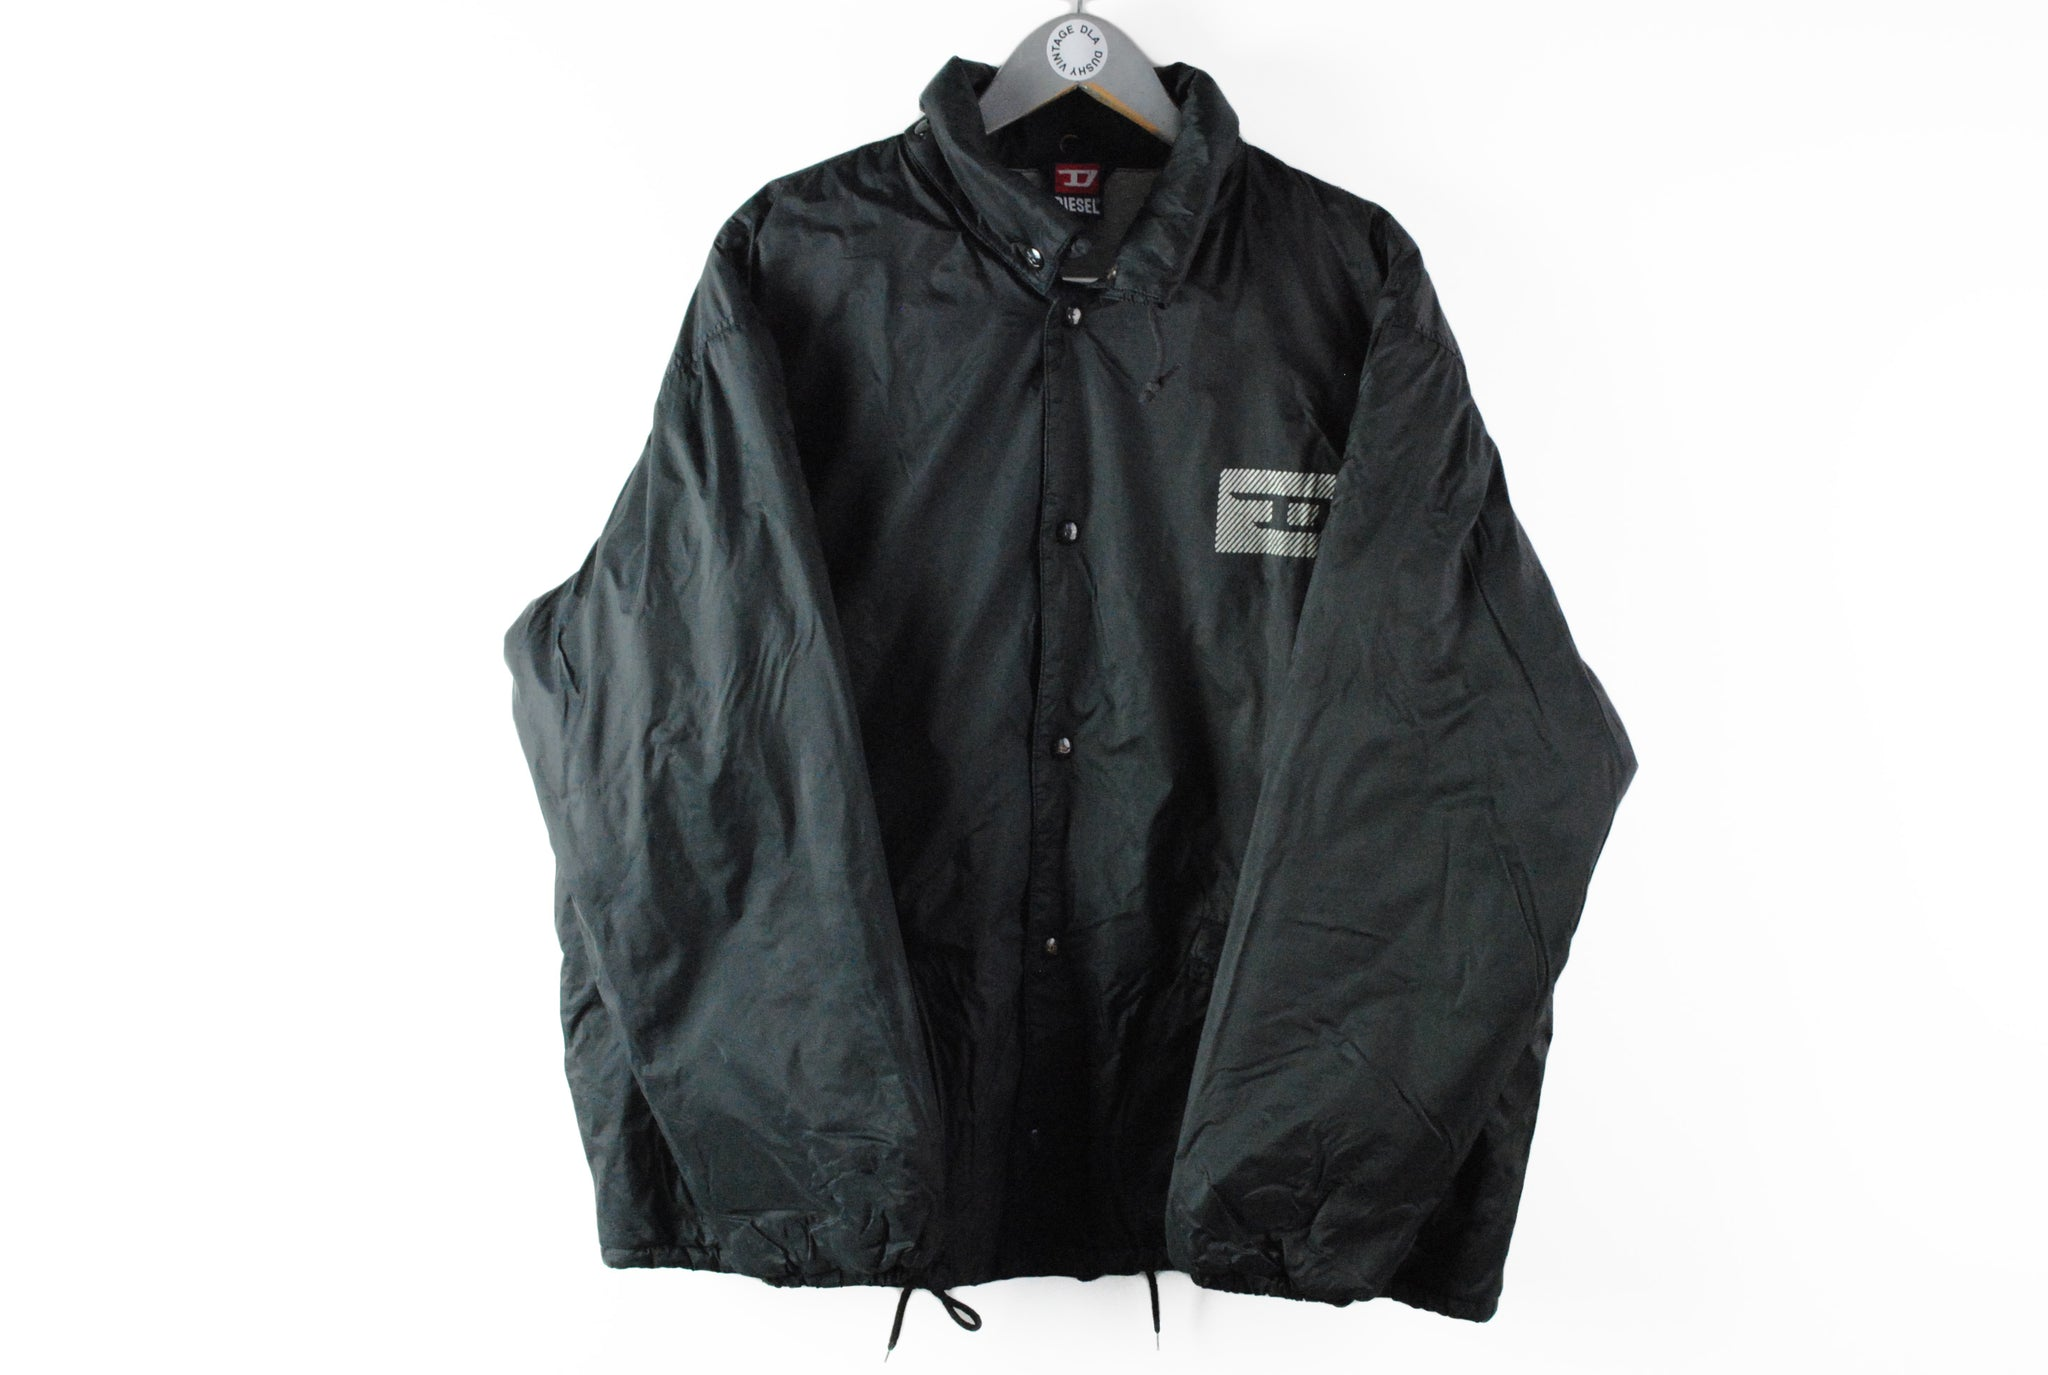 Vintage Diesel Jacket Large black coach retro style 90s Pank windbreaker